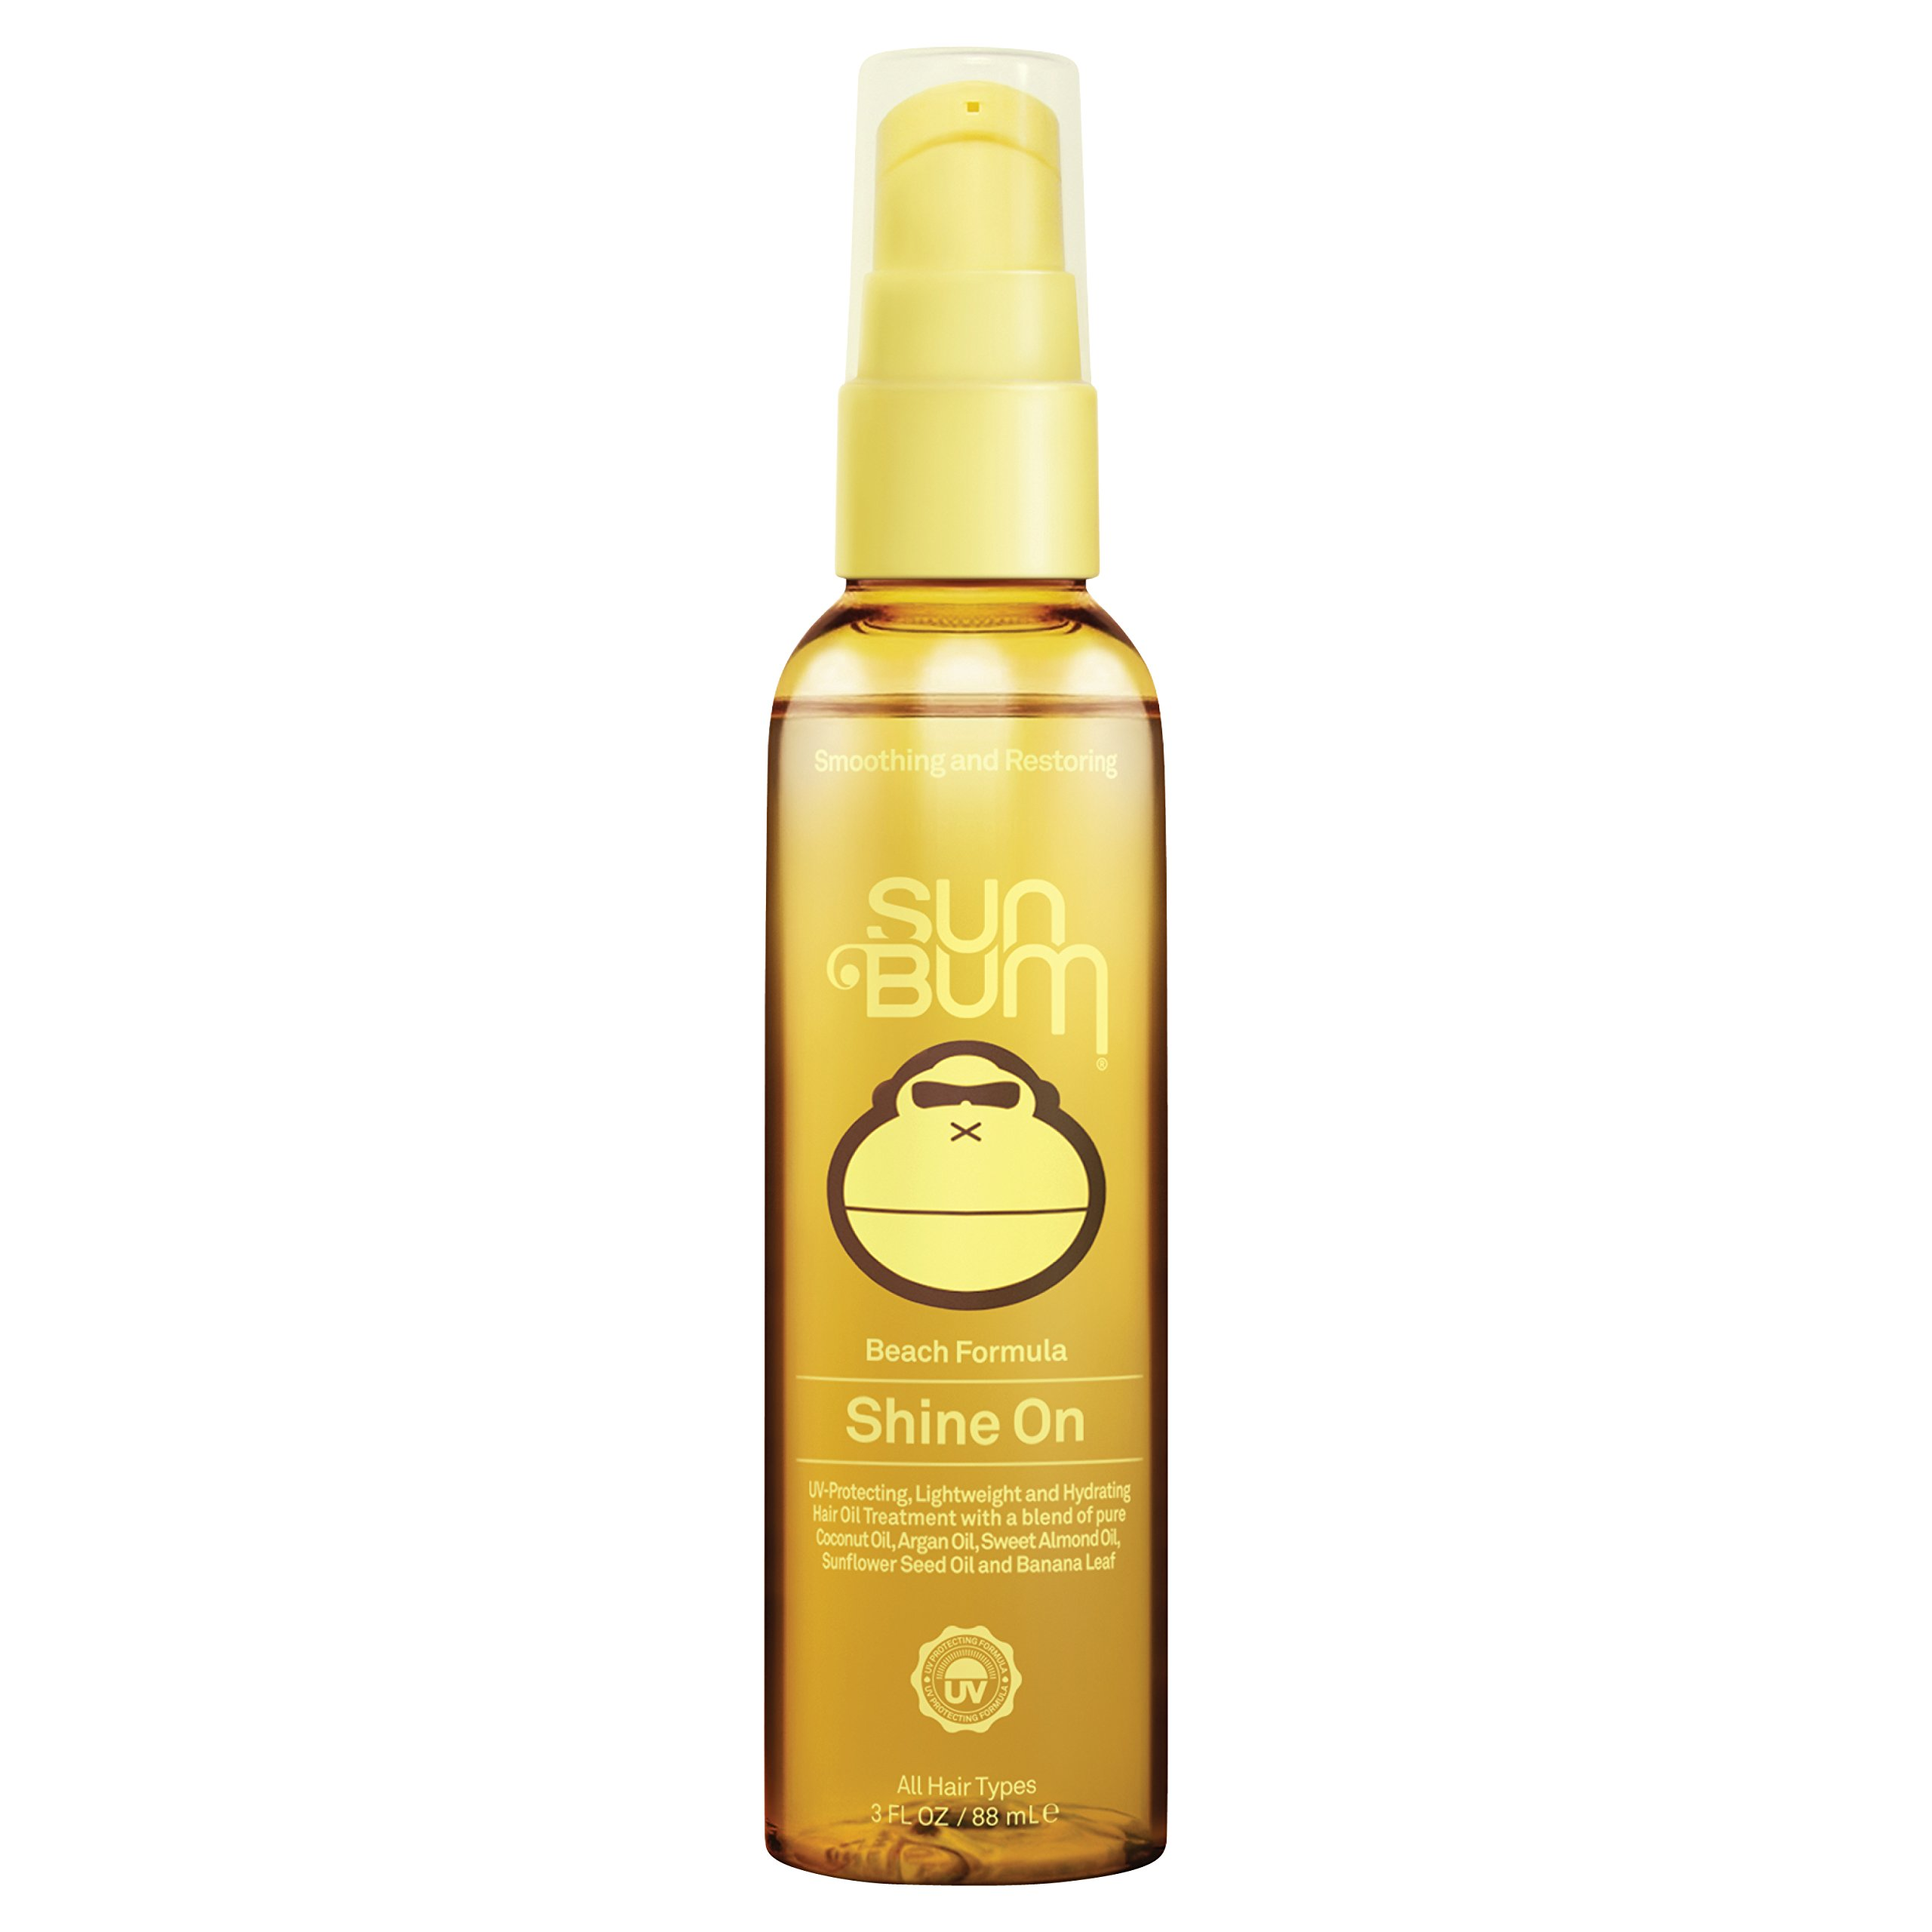 Sun Bum Beach Formula Revitalizing Shine On Hair Conditioning Treatment Spray, 3 oz Spray Bottle, 1 Count, Argal Oil, Hydrating, Frizz Control, UV Protection, Paraben Free, Gluten Free, Vegan